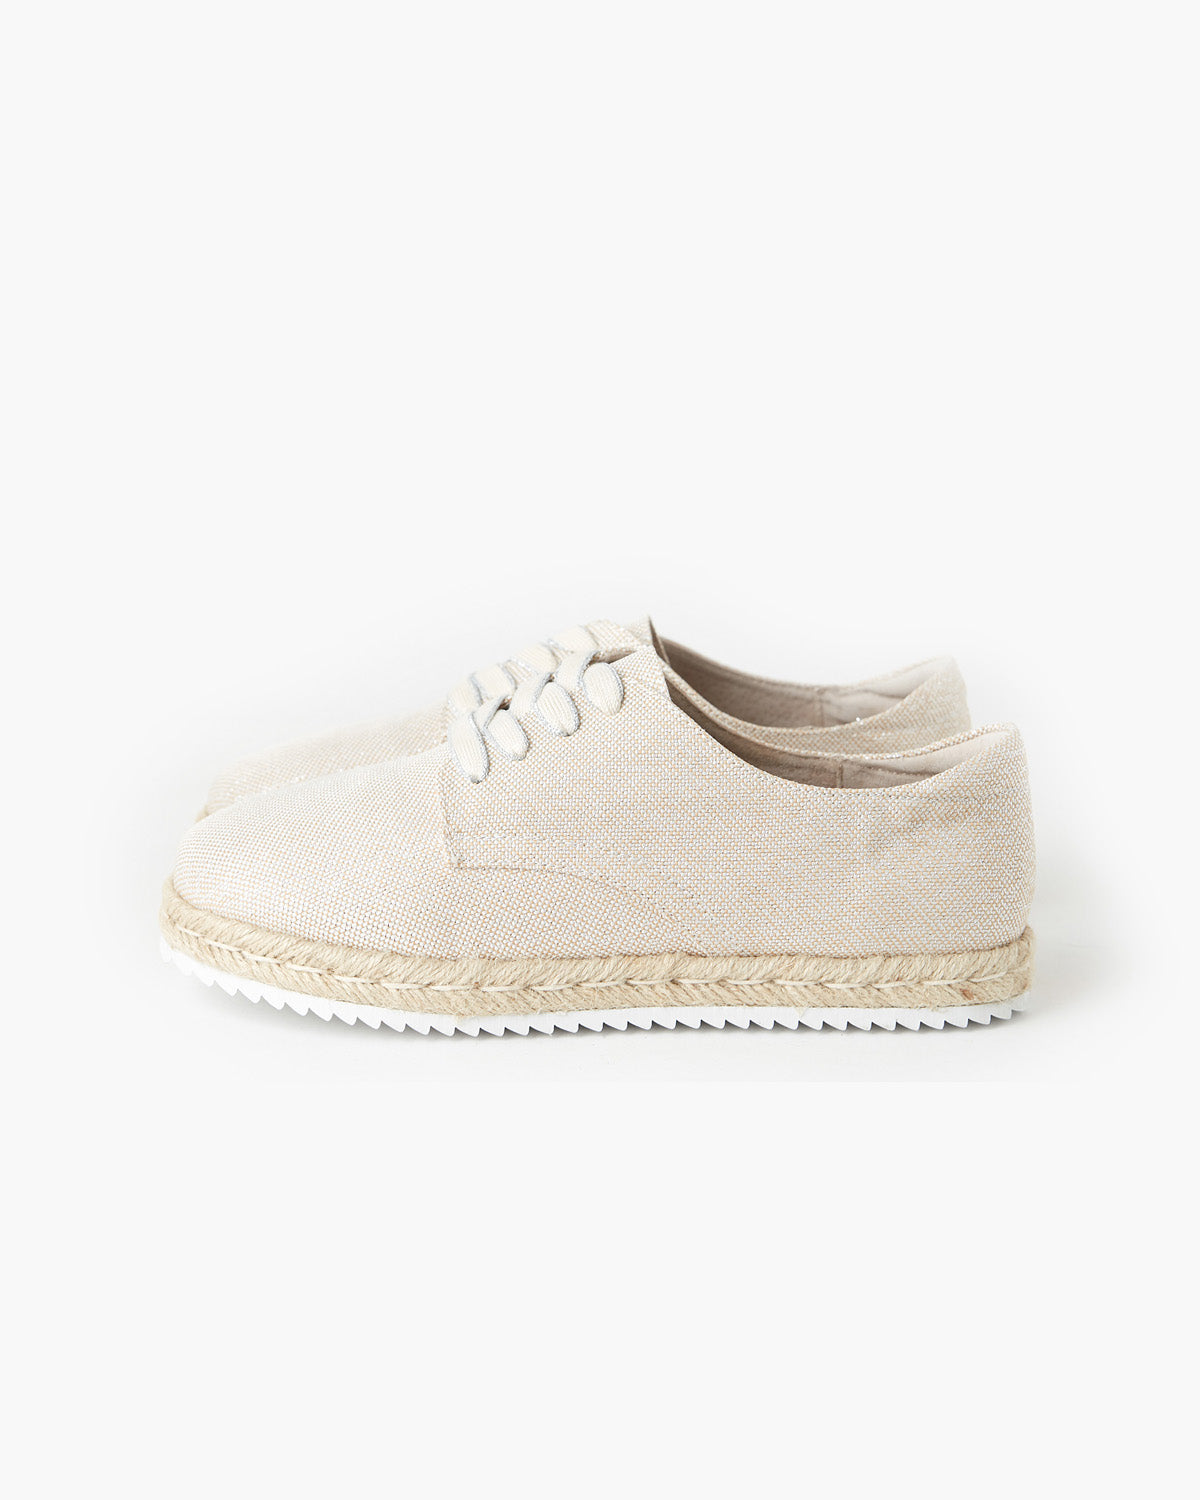 Giselle Canvas Espadrille - Metallic